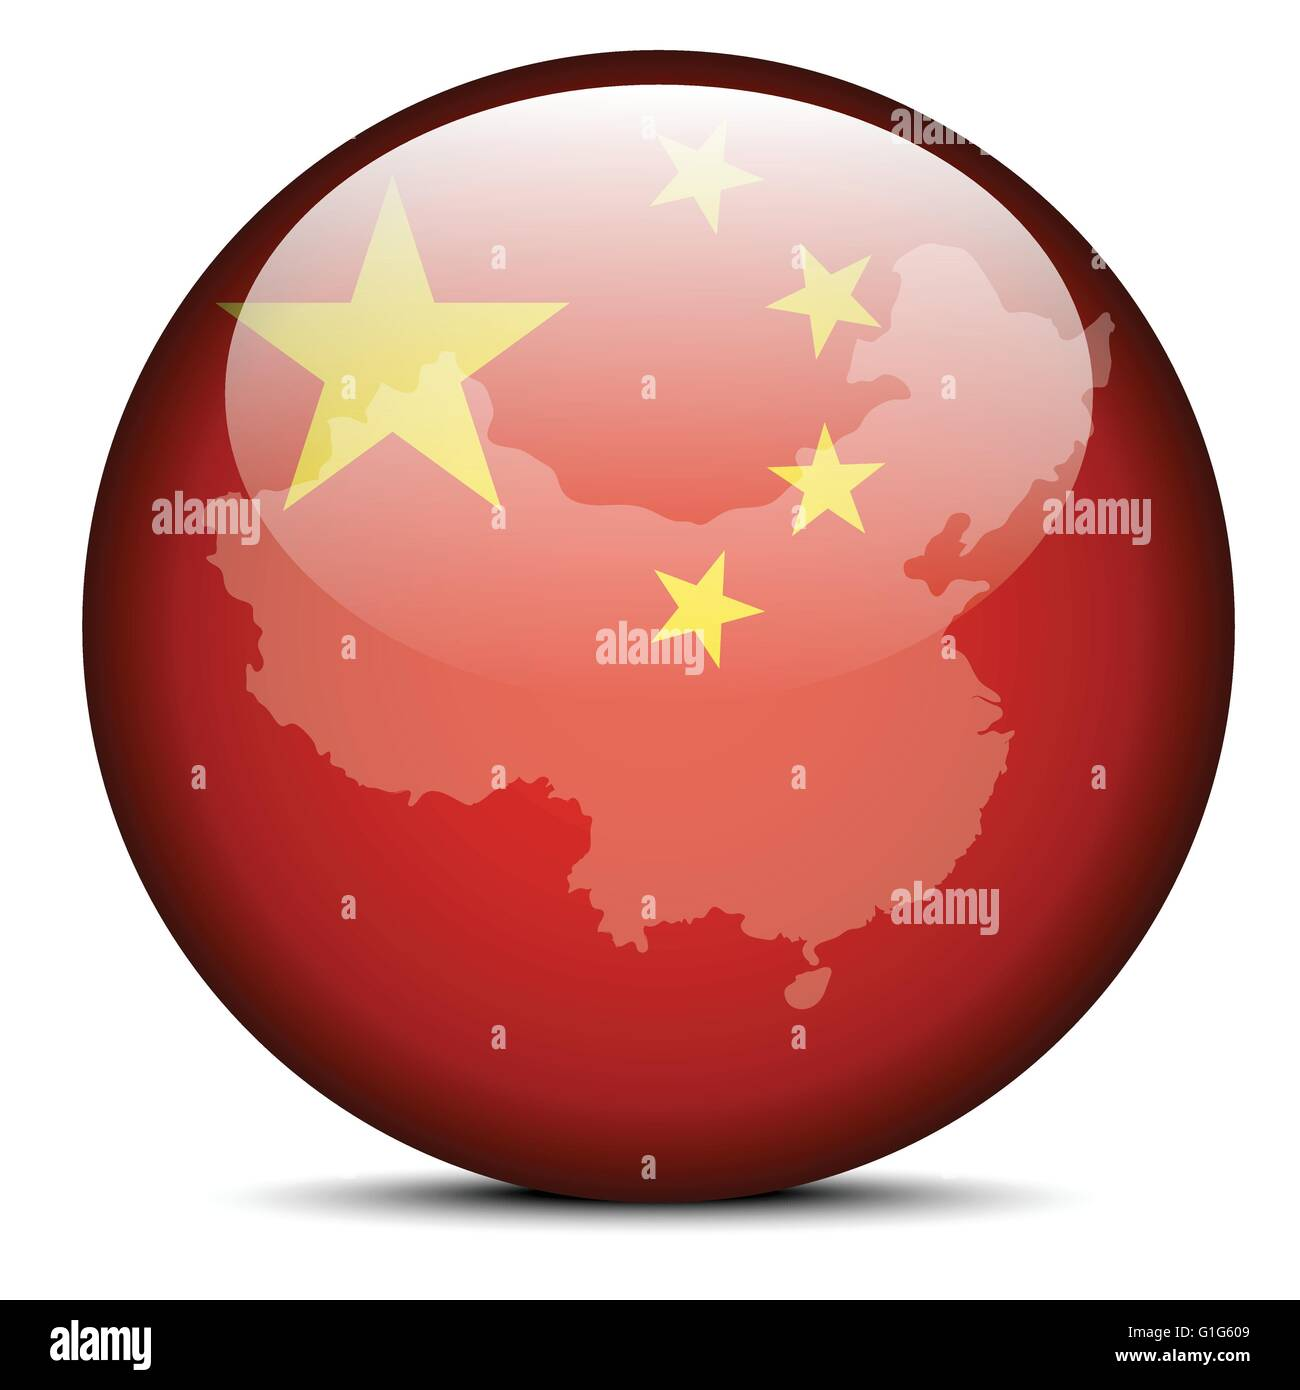 Vector Image - Map on flag button of People's Republic of China - Stock Image